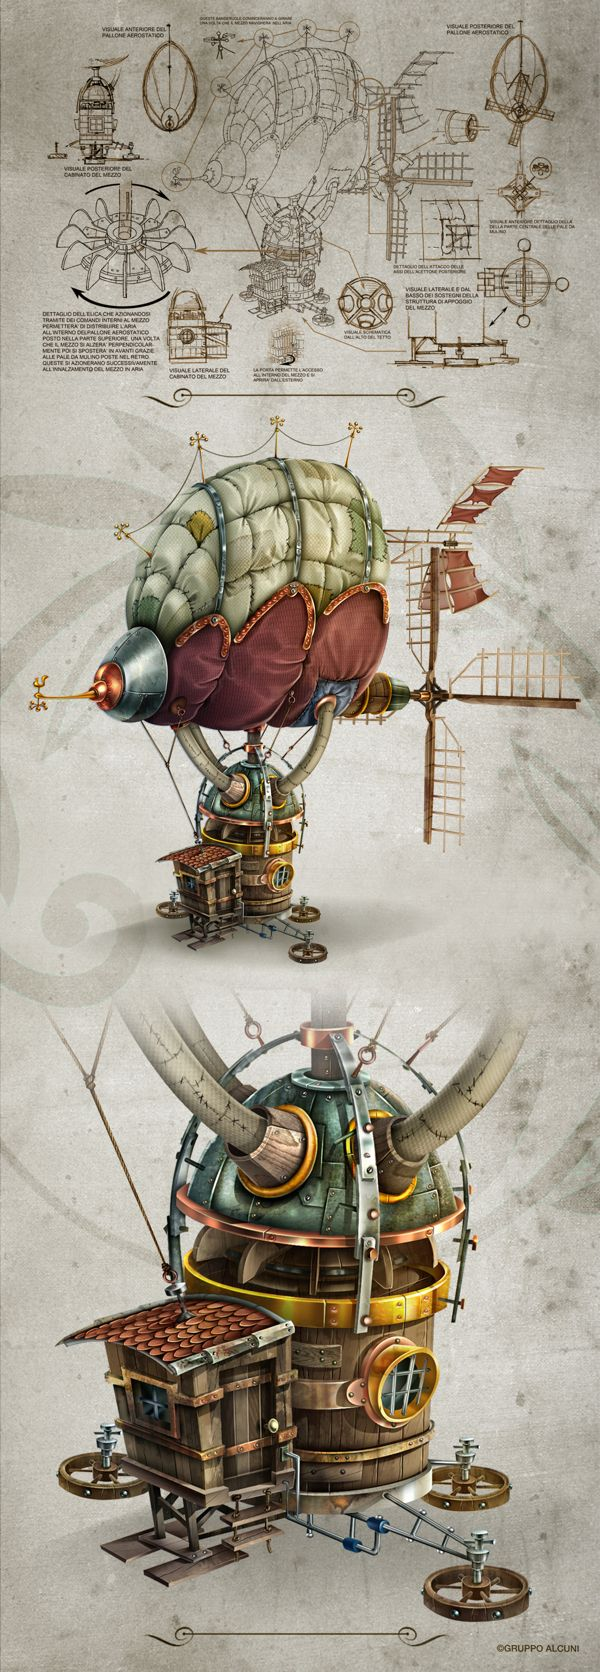 Props by Giovanni Maisto, via Behance